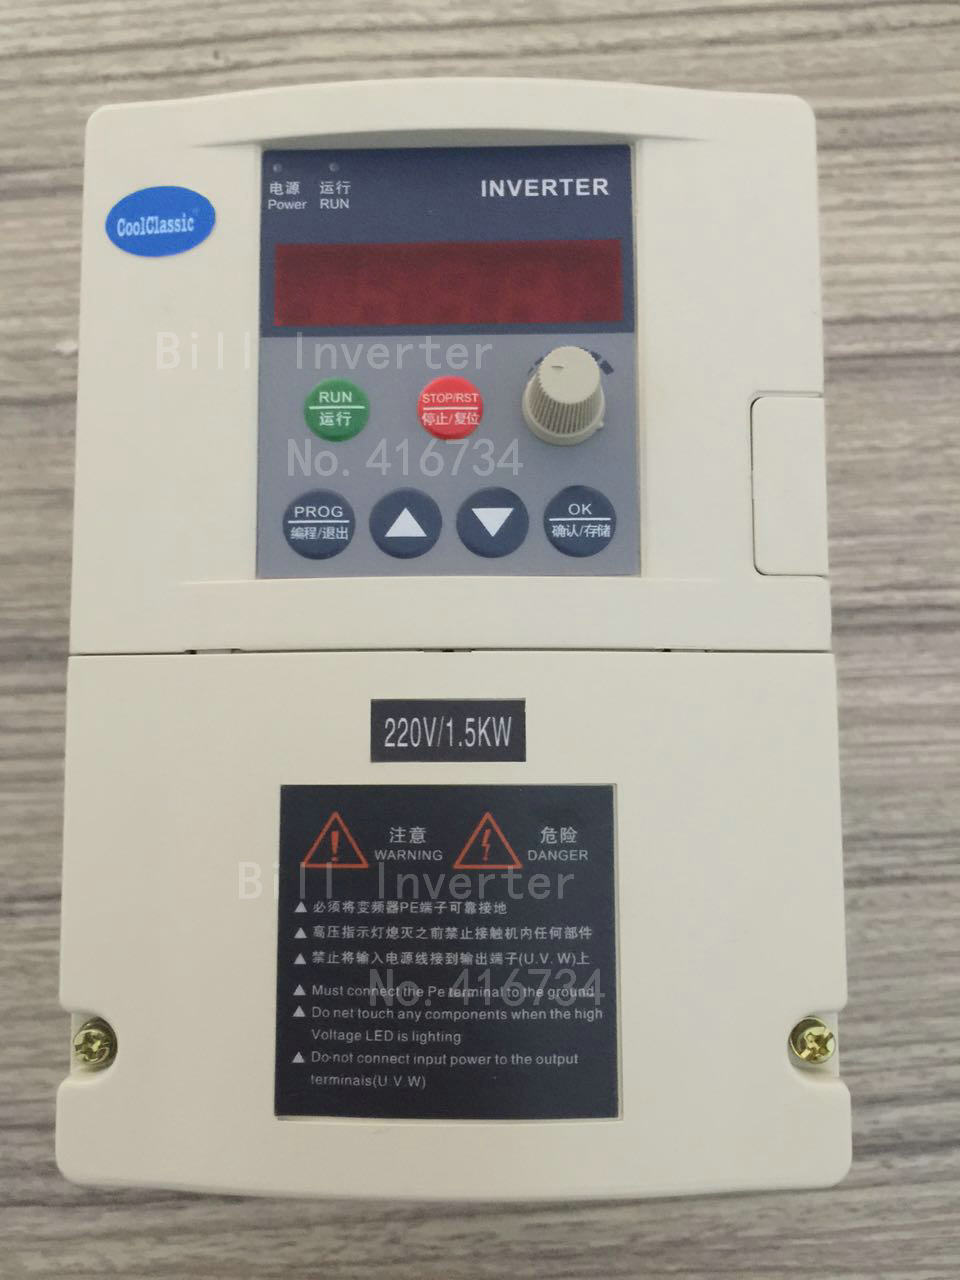 VFD Inverter  CoolClassic ZW-R278 Inverter  1500w Single phase 220v input three-phase motor with control line